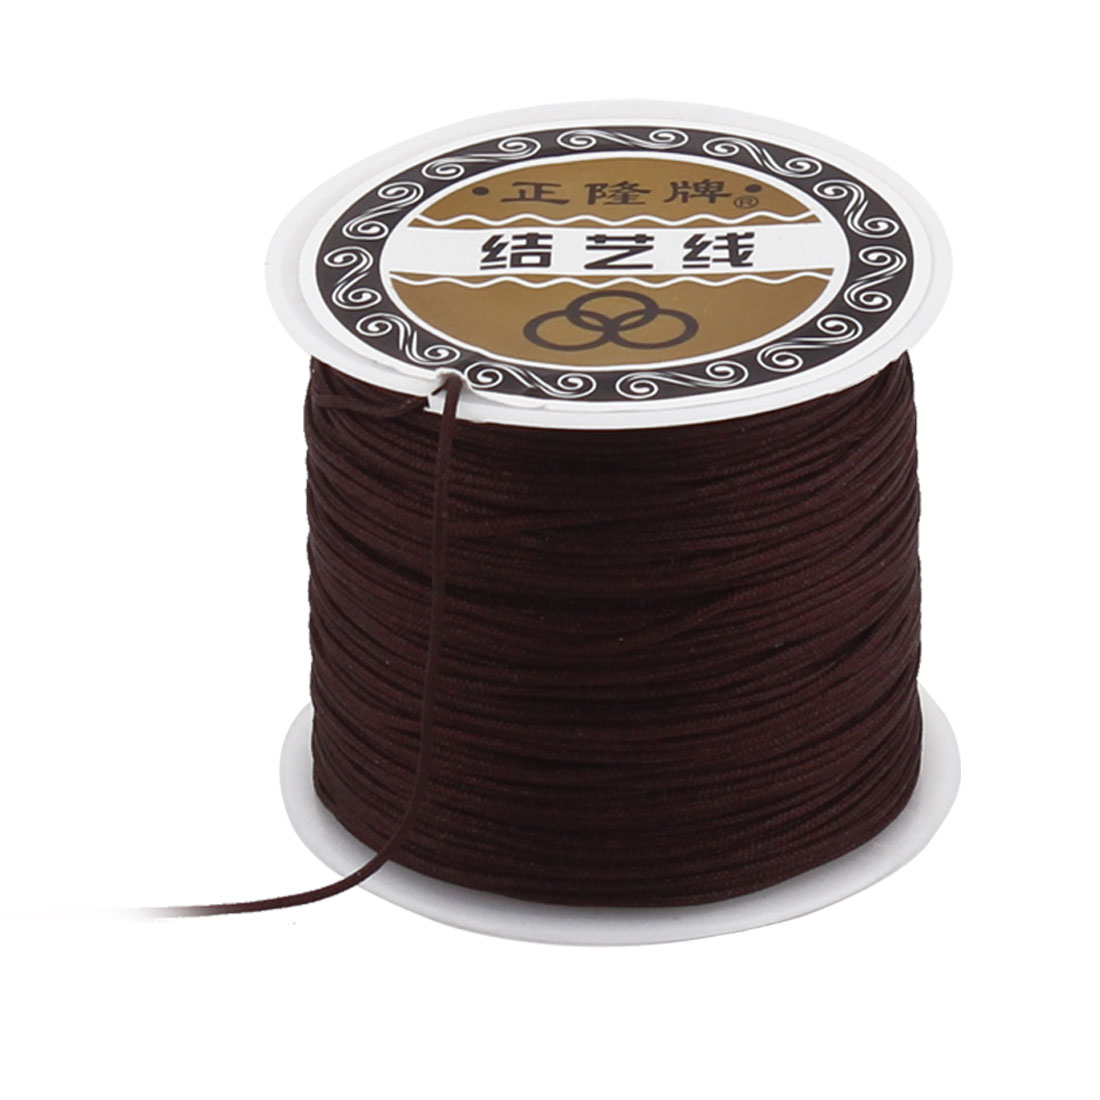 DIY Necklace Bracelet Jewelry Making Beads String Thread Roll Brown 55 Yard - image 3 of 3